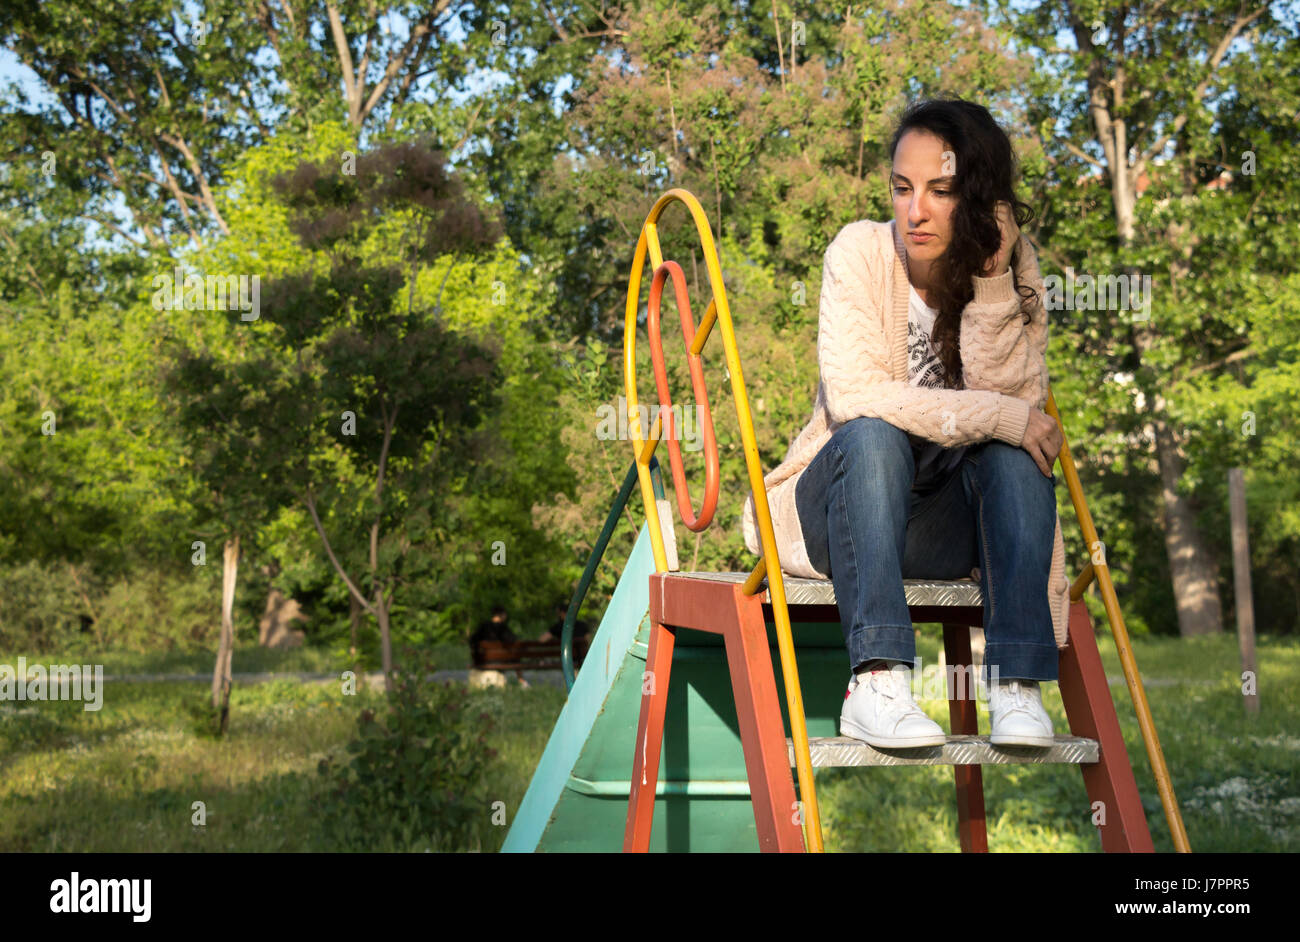 Portrait of a young woman looking away sitting on the top of a slide at a park, thinking, remembering. - Stock Image